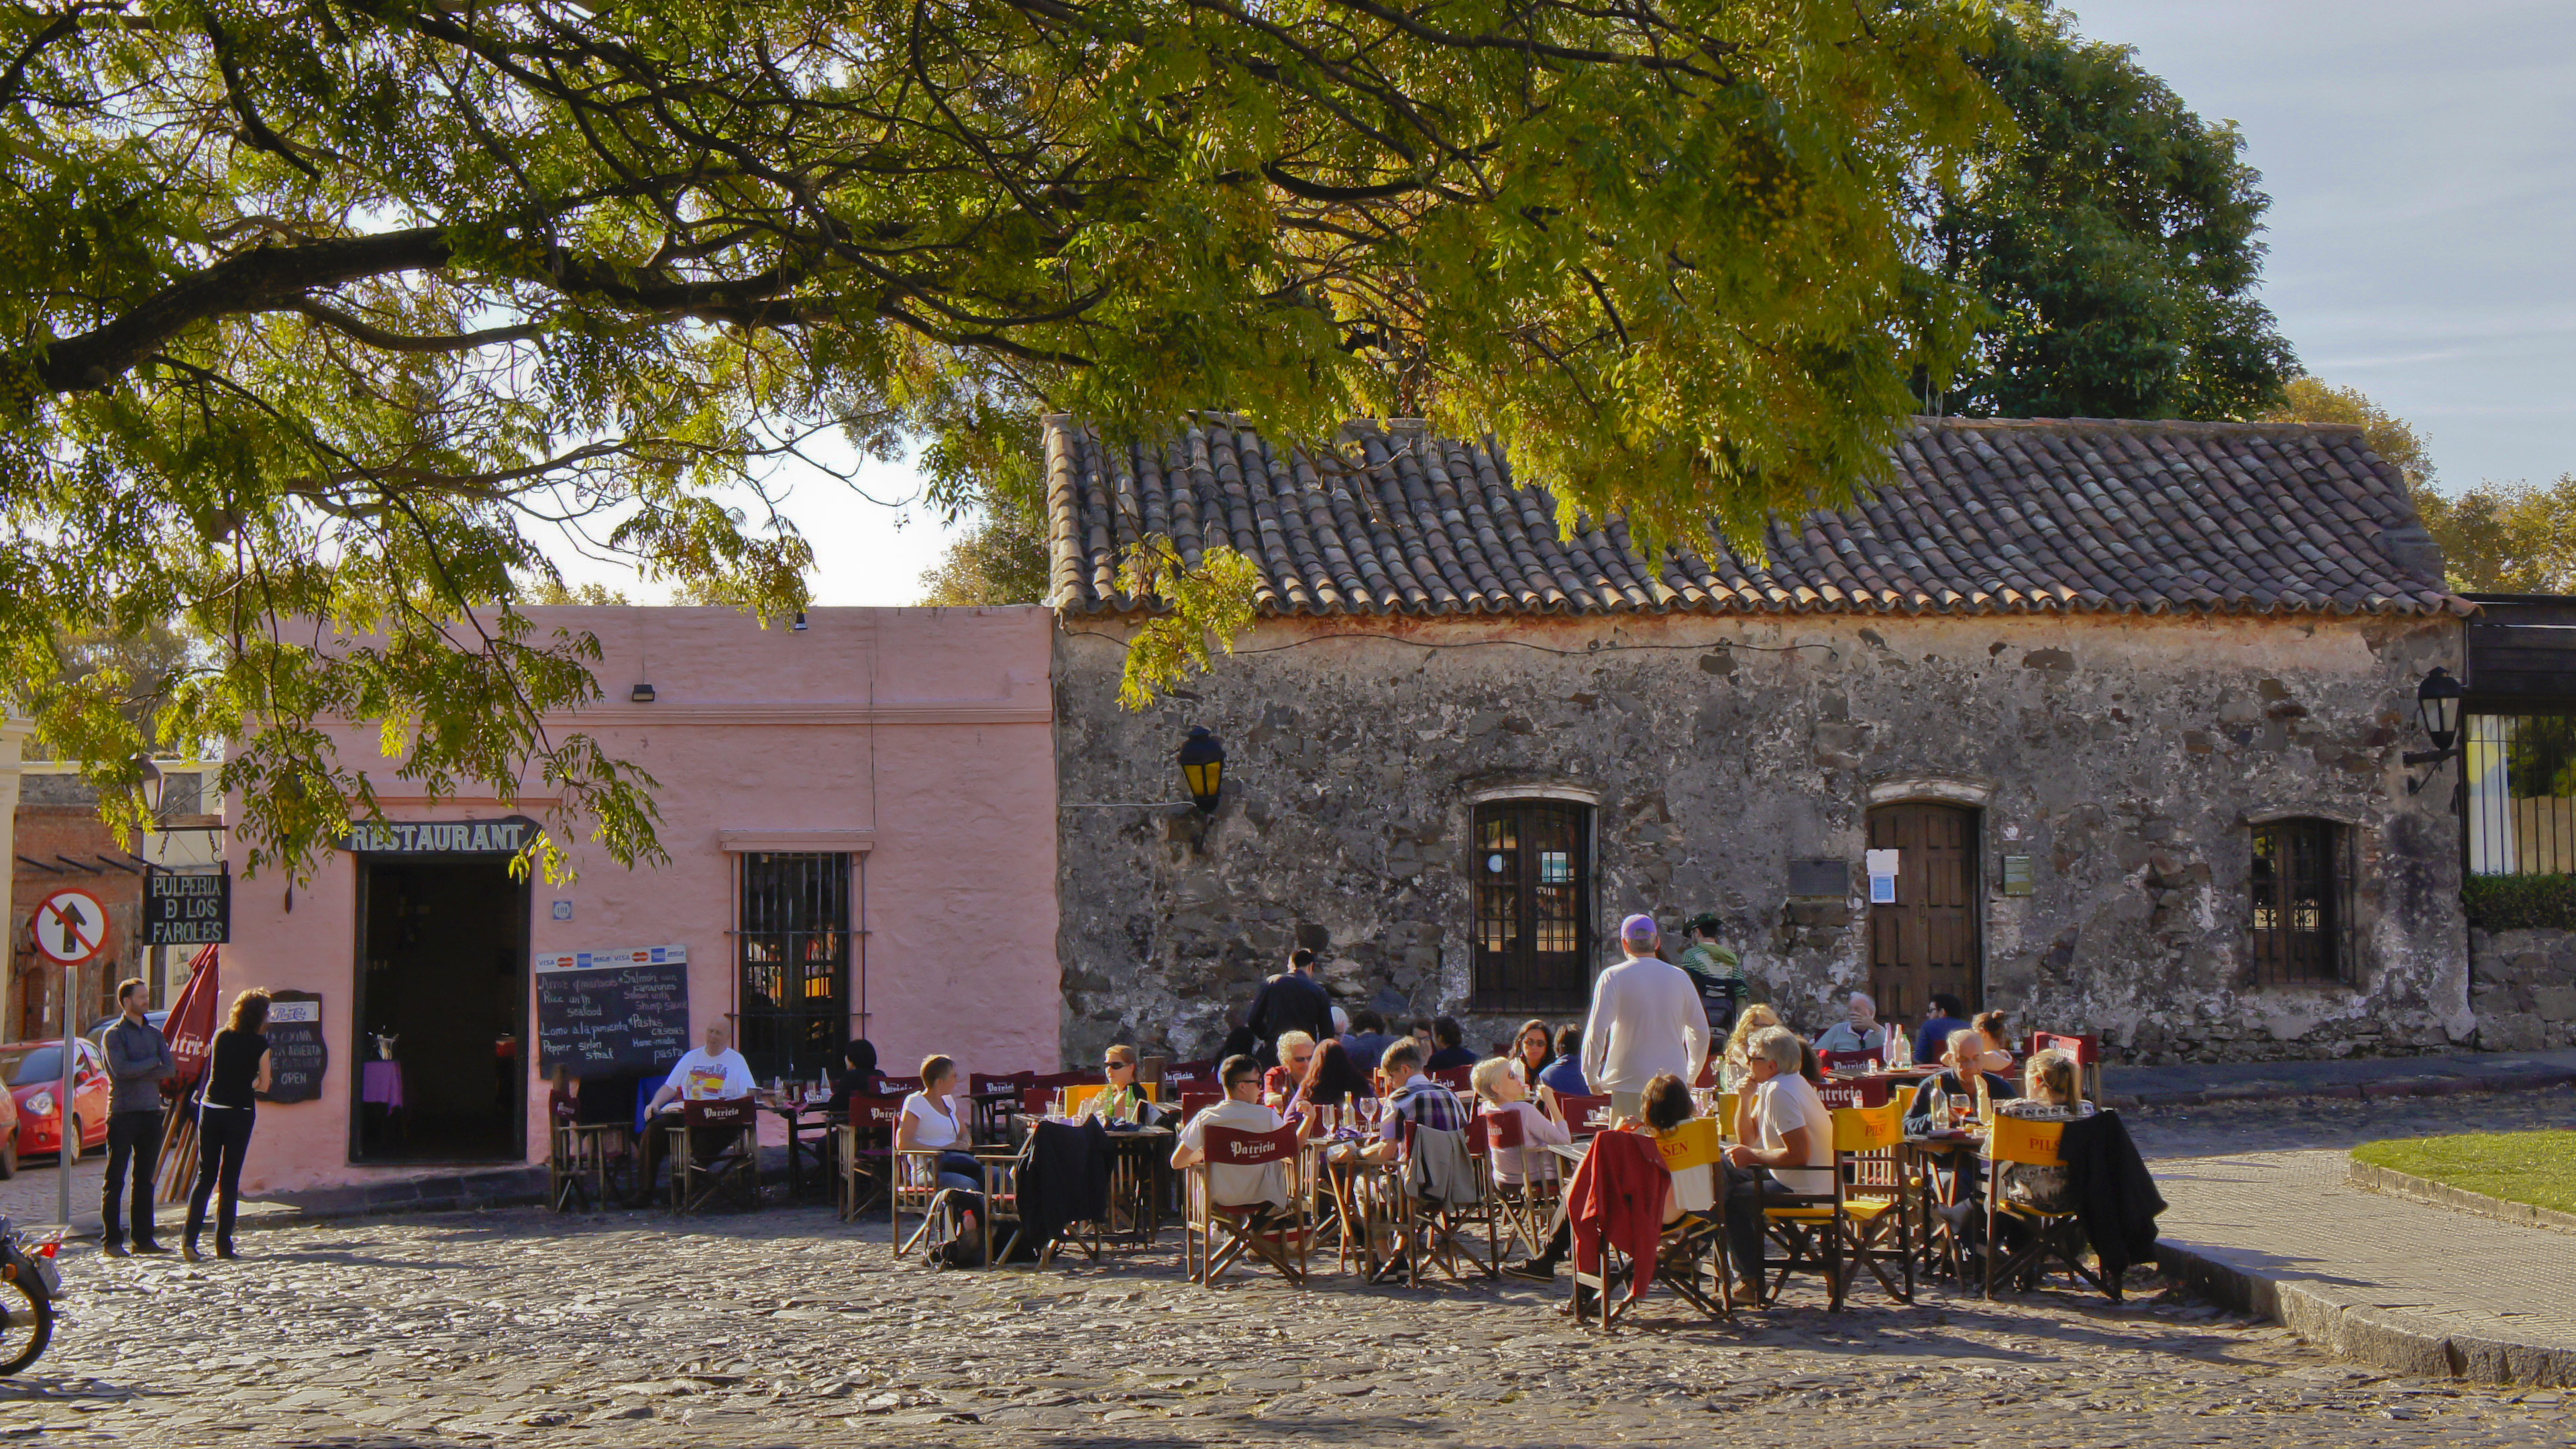 UNWTO in Uruguay: Celebrating Resilience and Supporting Tourism's Sustainable Restart